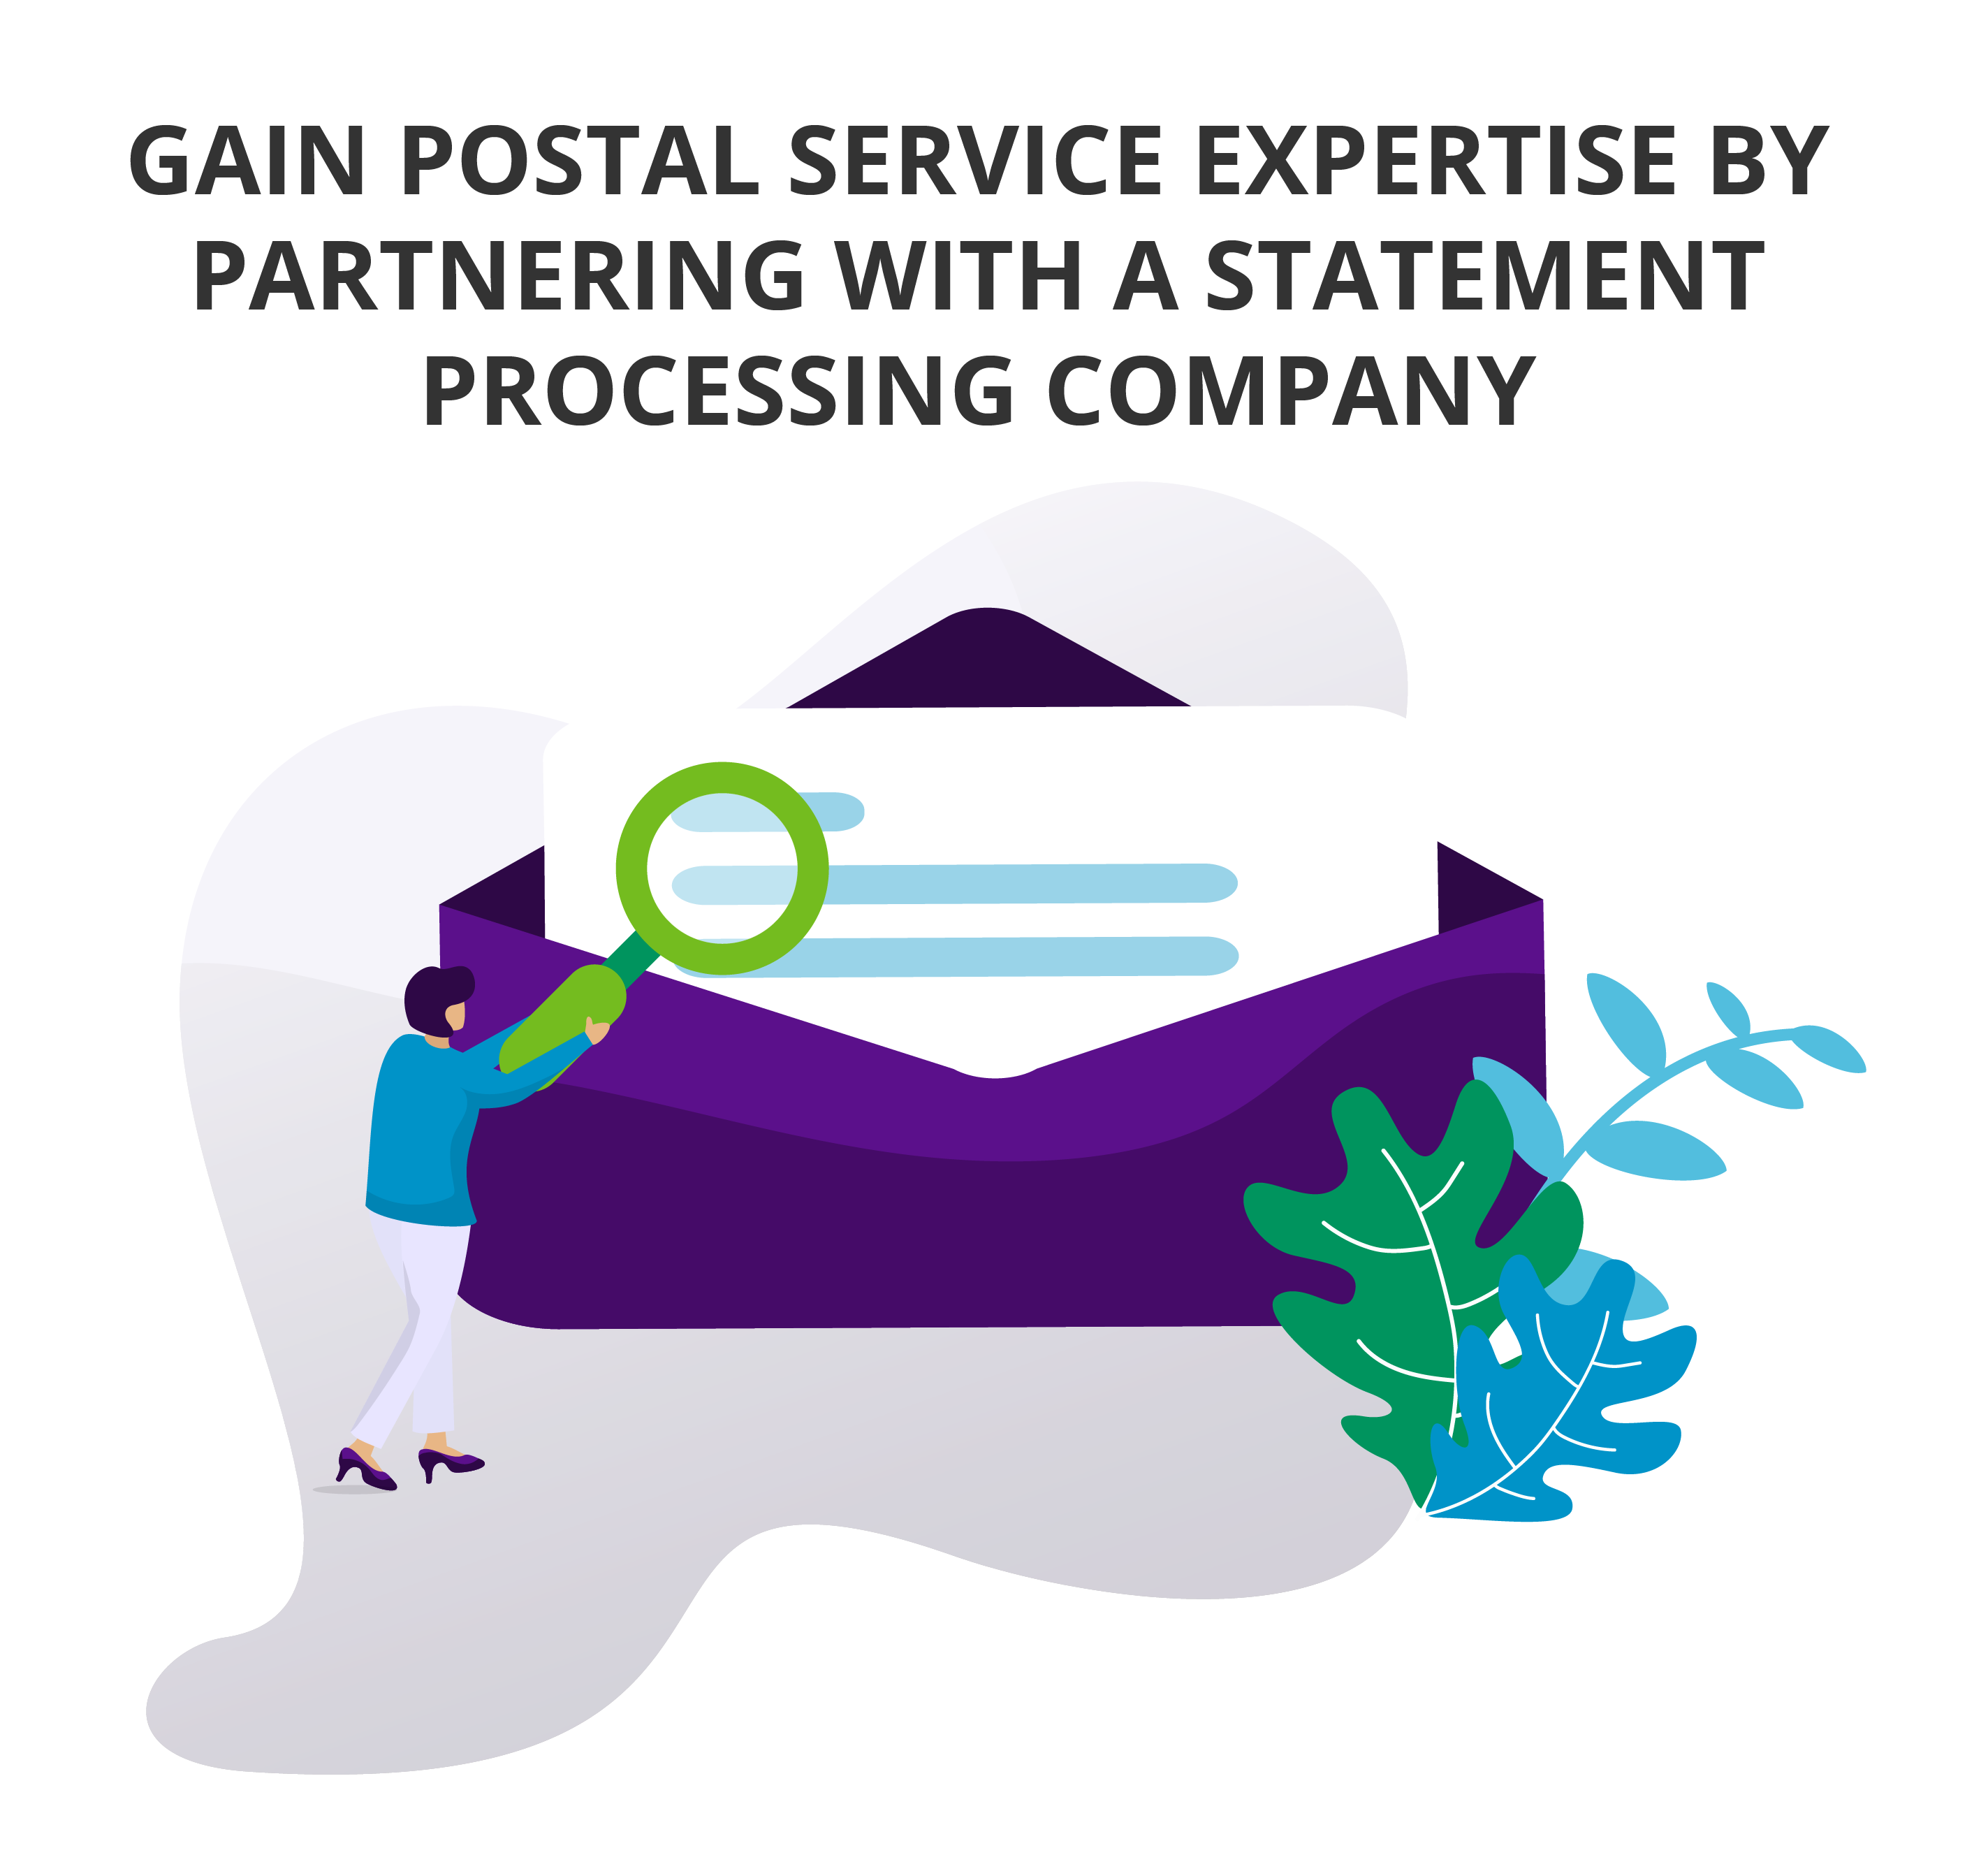 Gain Postal Service Expertise by Partnering with a Statement Processing Company